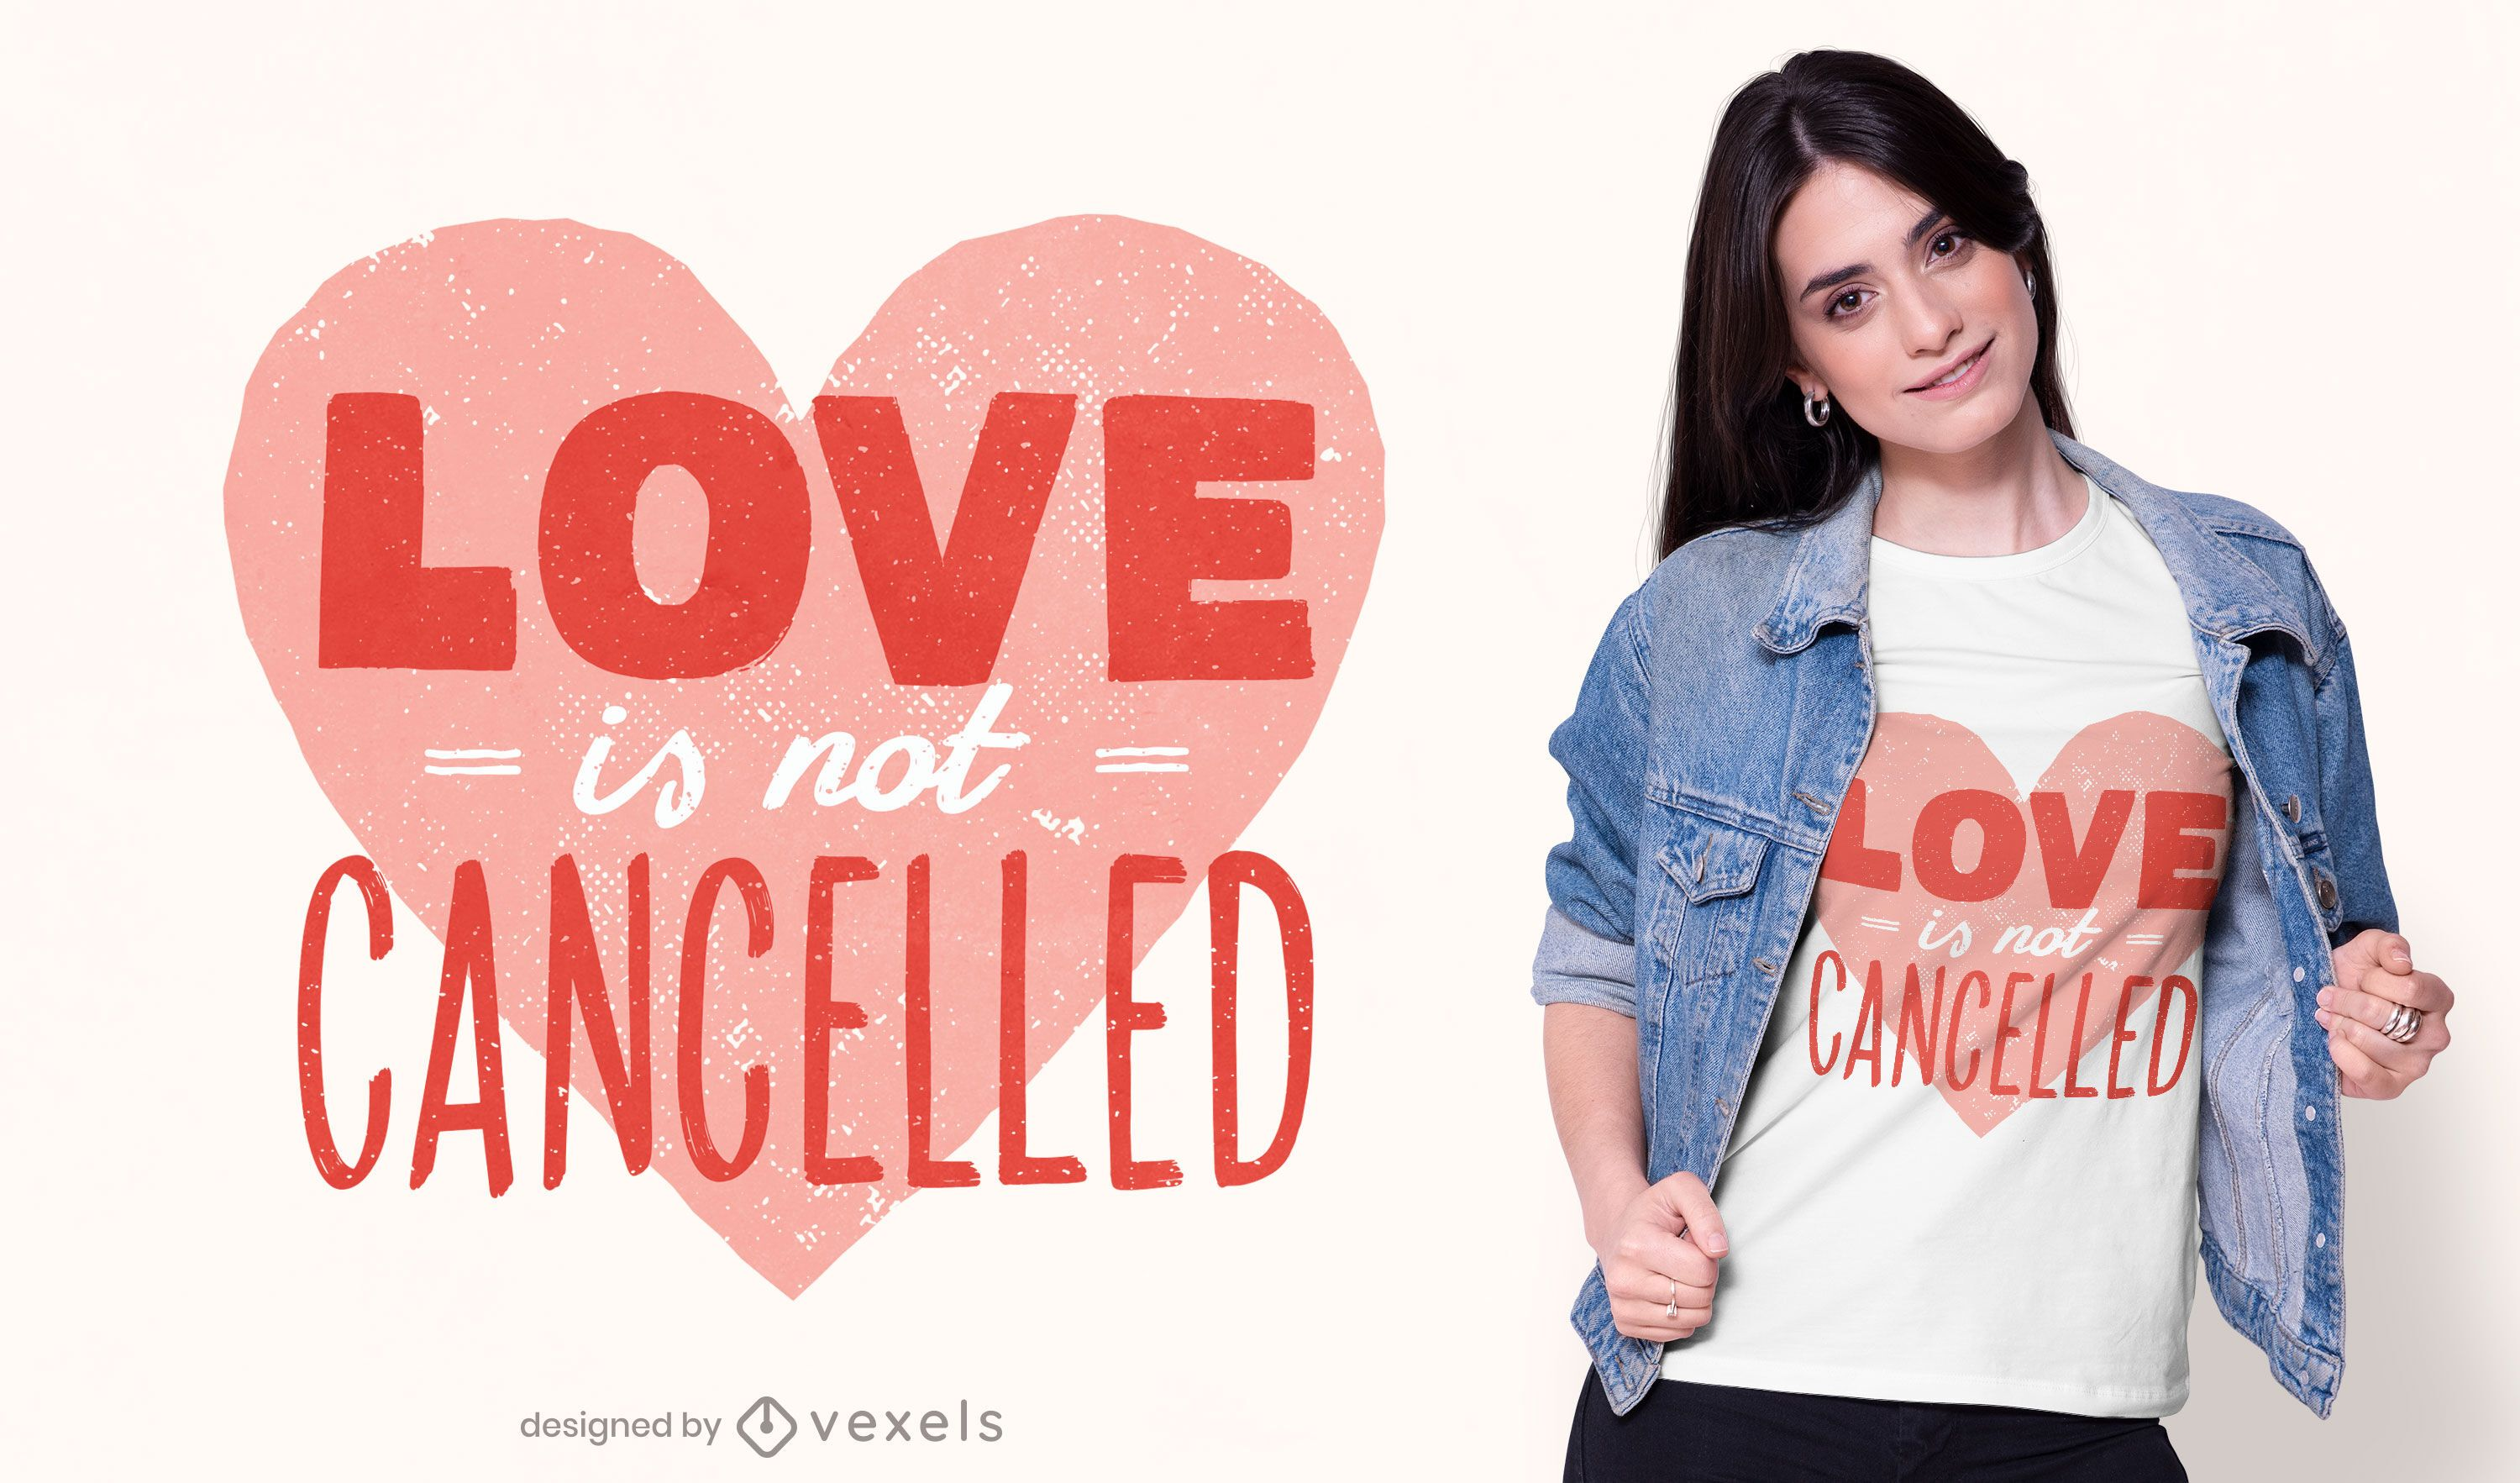 Love is not cancelled t-shirt design